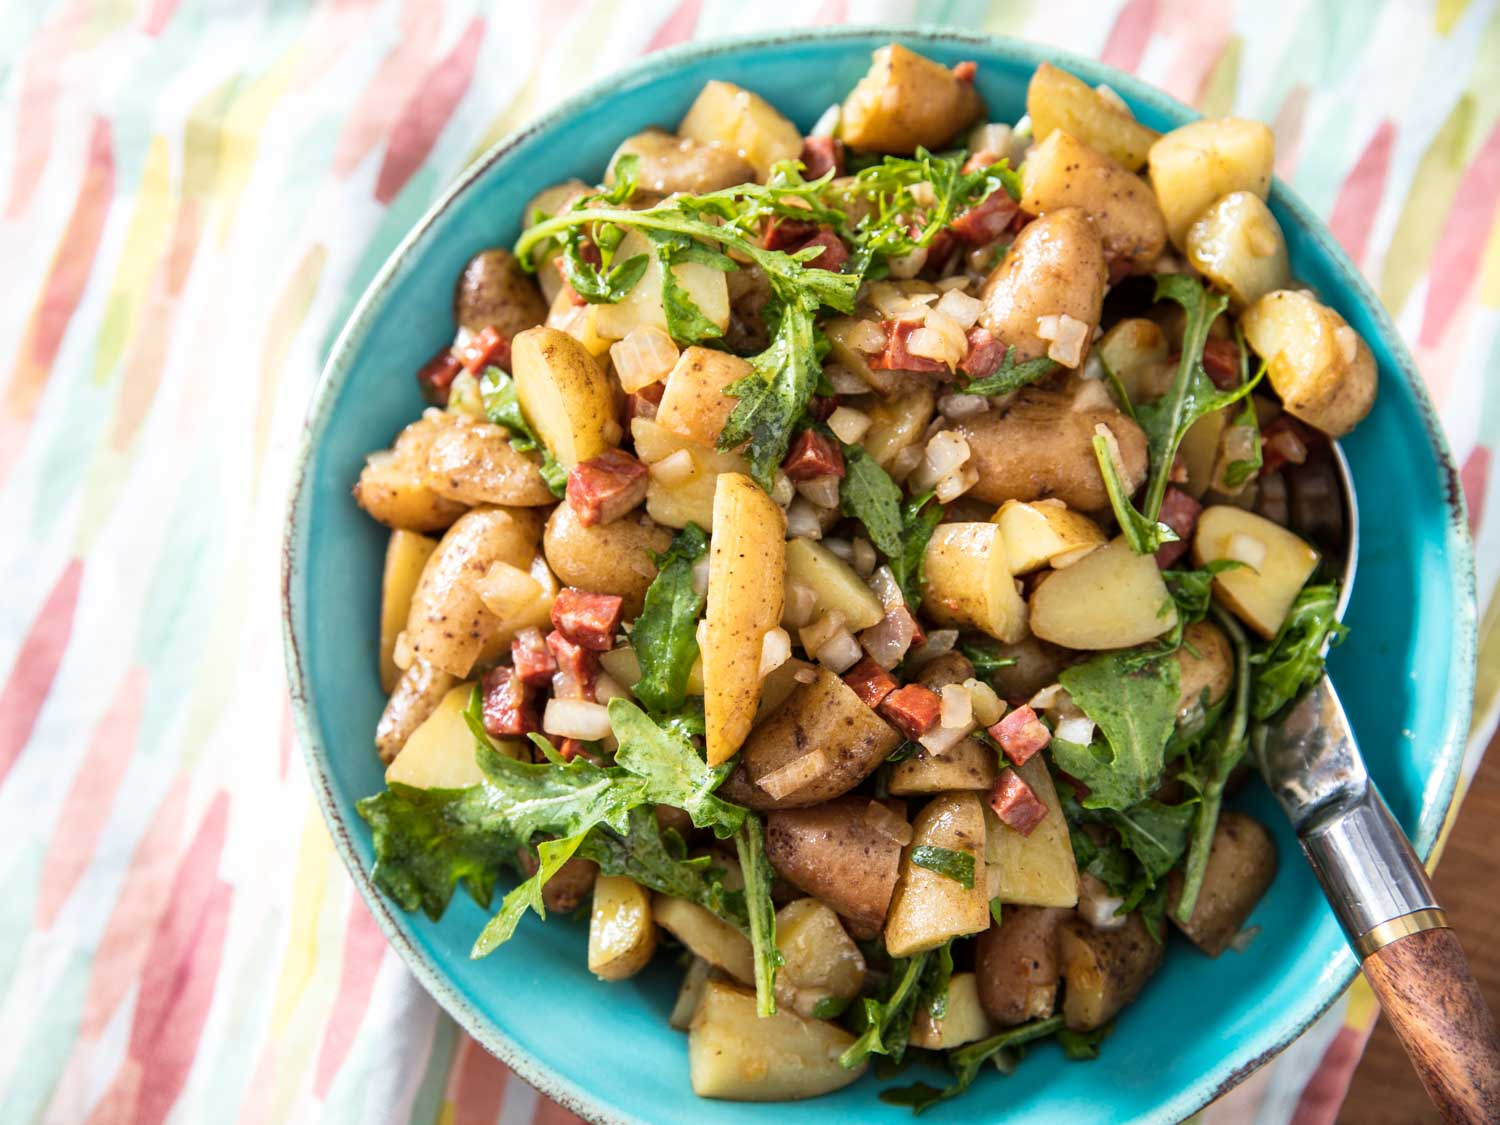 YUMYIN Fingerling Potato Salad with Caramelized Onion and Arugula.jpg